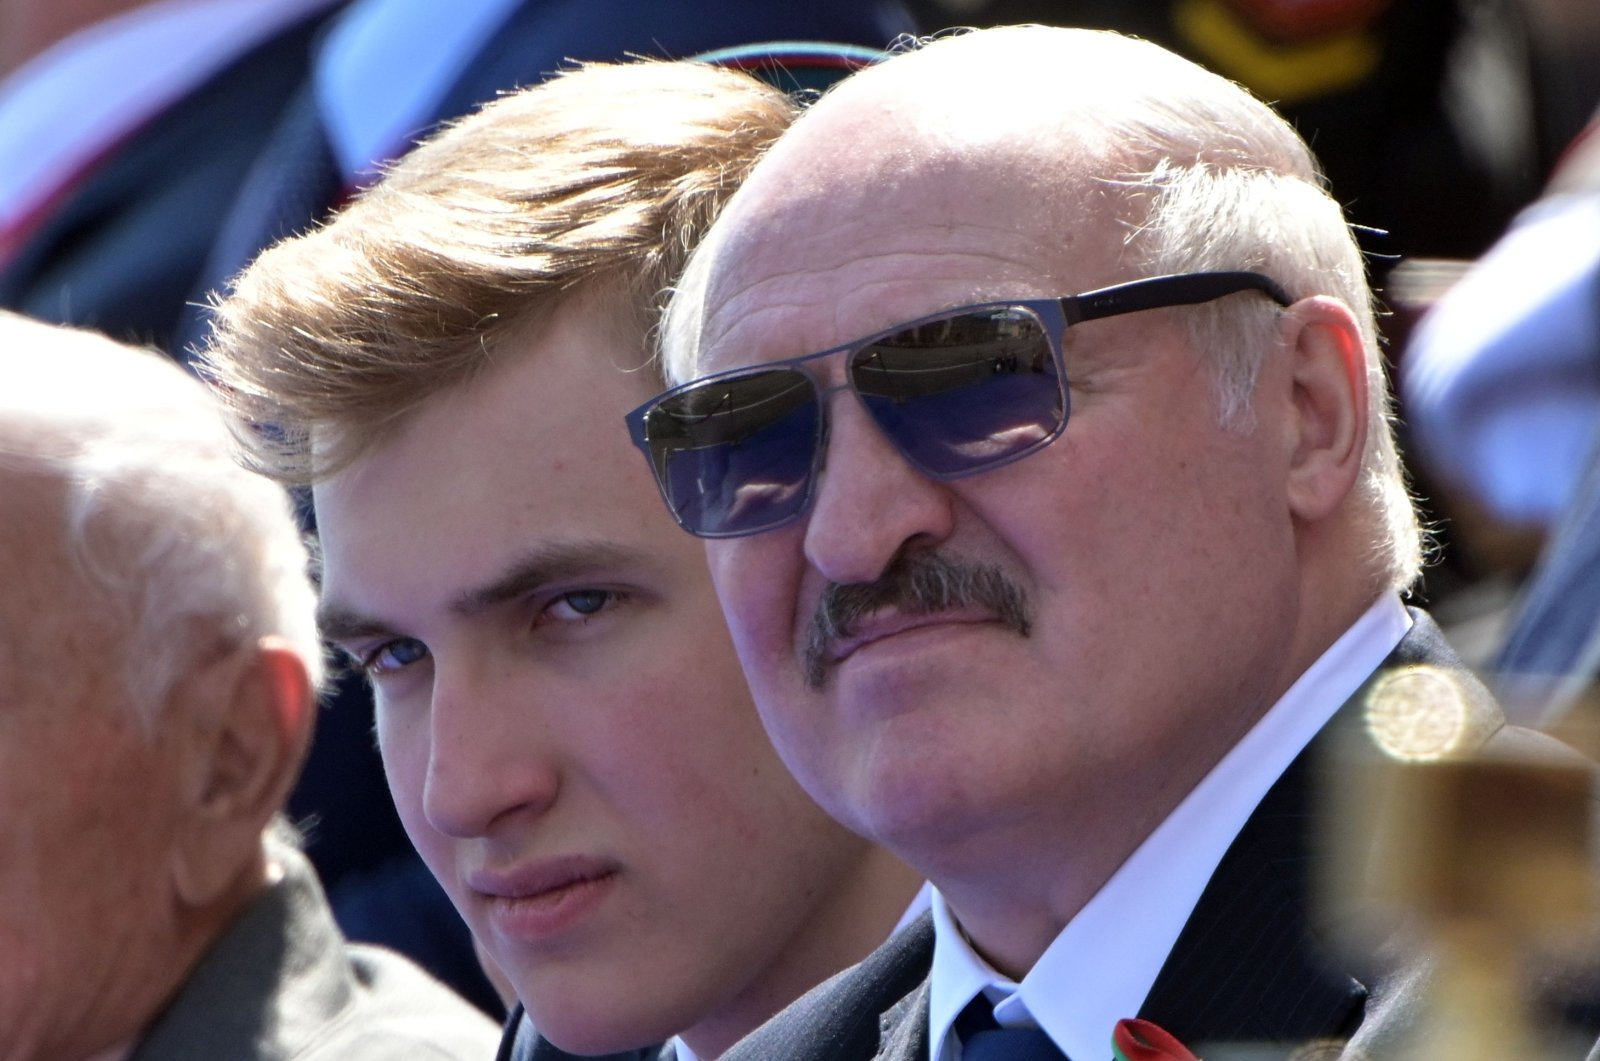 Belarus's President Alexander Lukashenko and his son Nikolai watch a military parade, which marks the 75th anniversary of the Soviet victory over Nazi Germany in World War II, at Red Square in Moscow, June 24, 2020. (Host photo agency via AFP Photo)